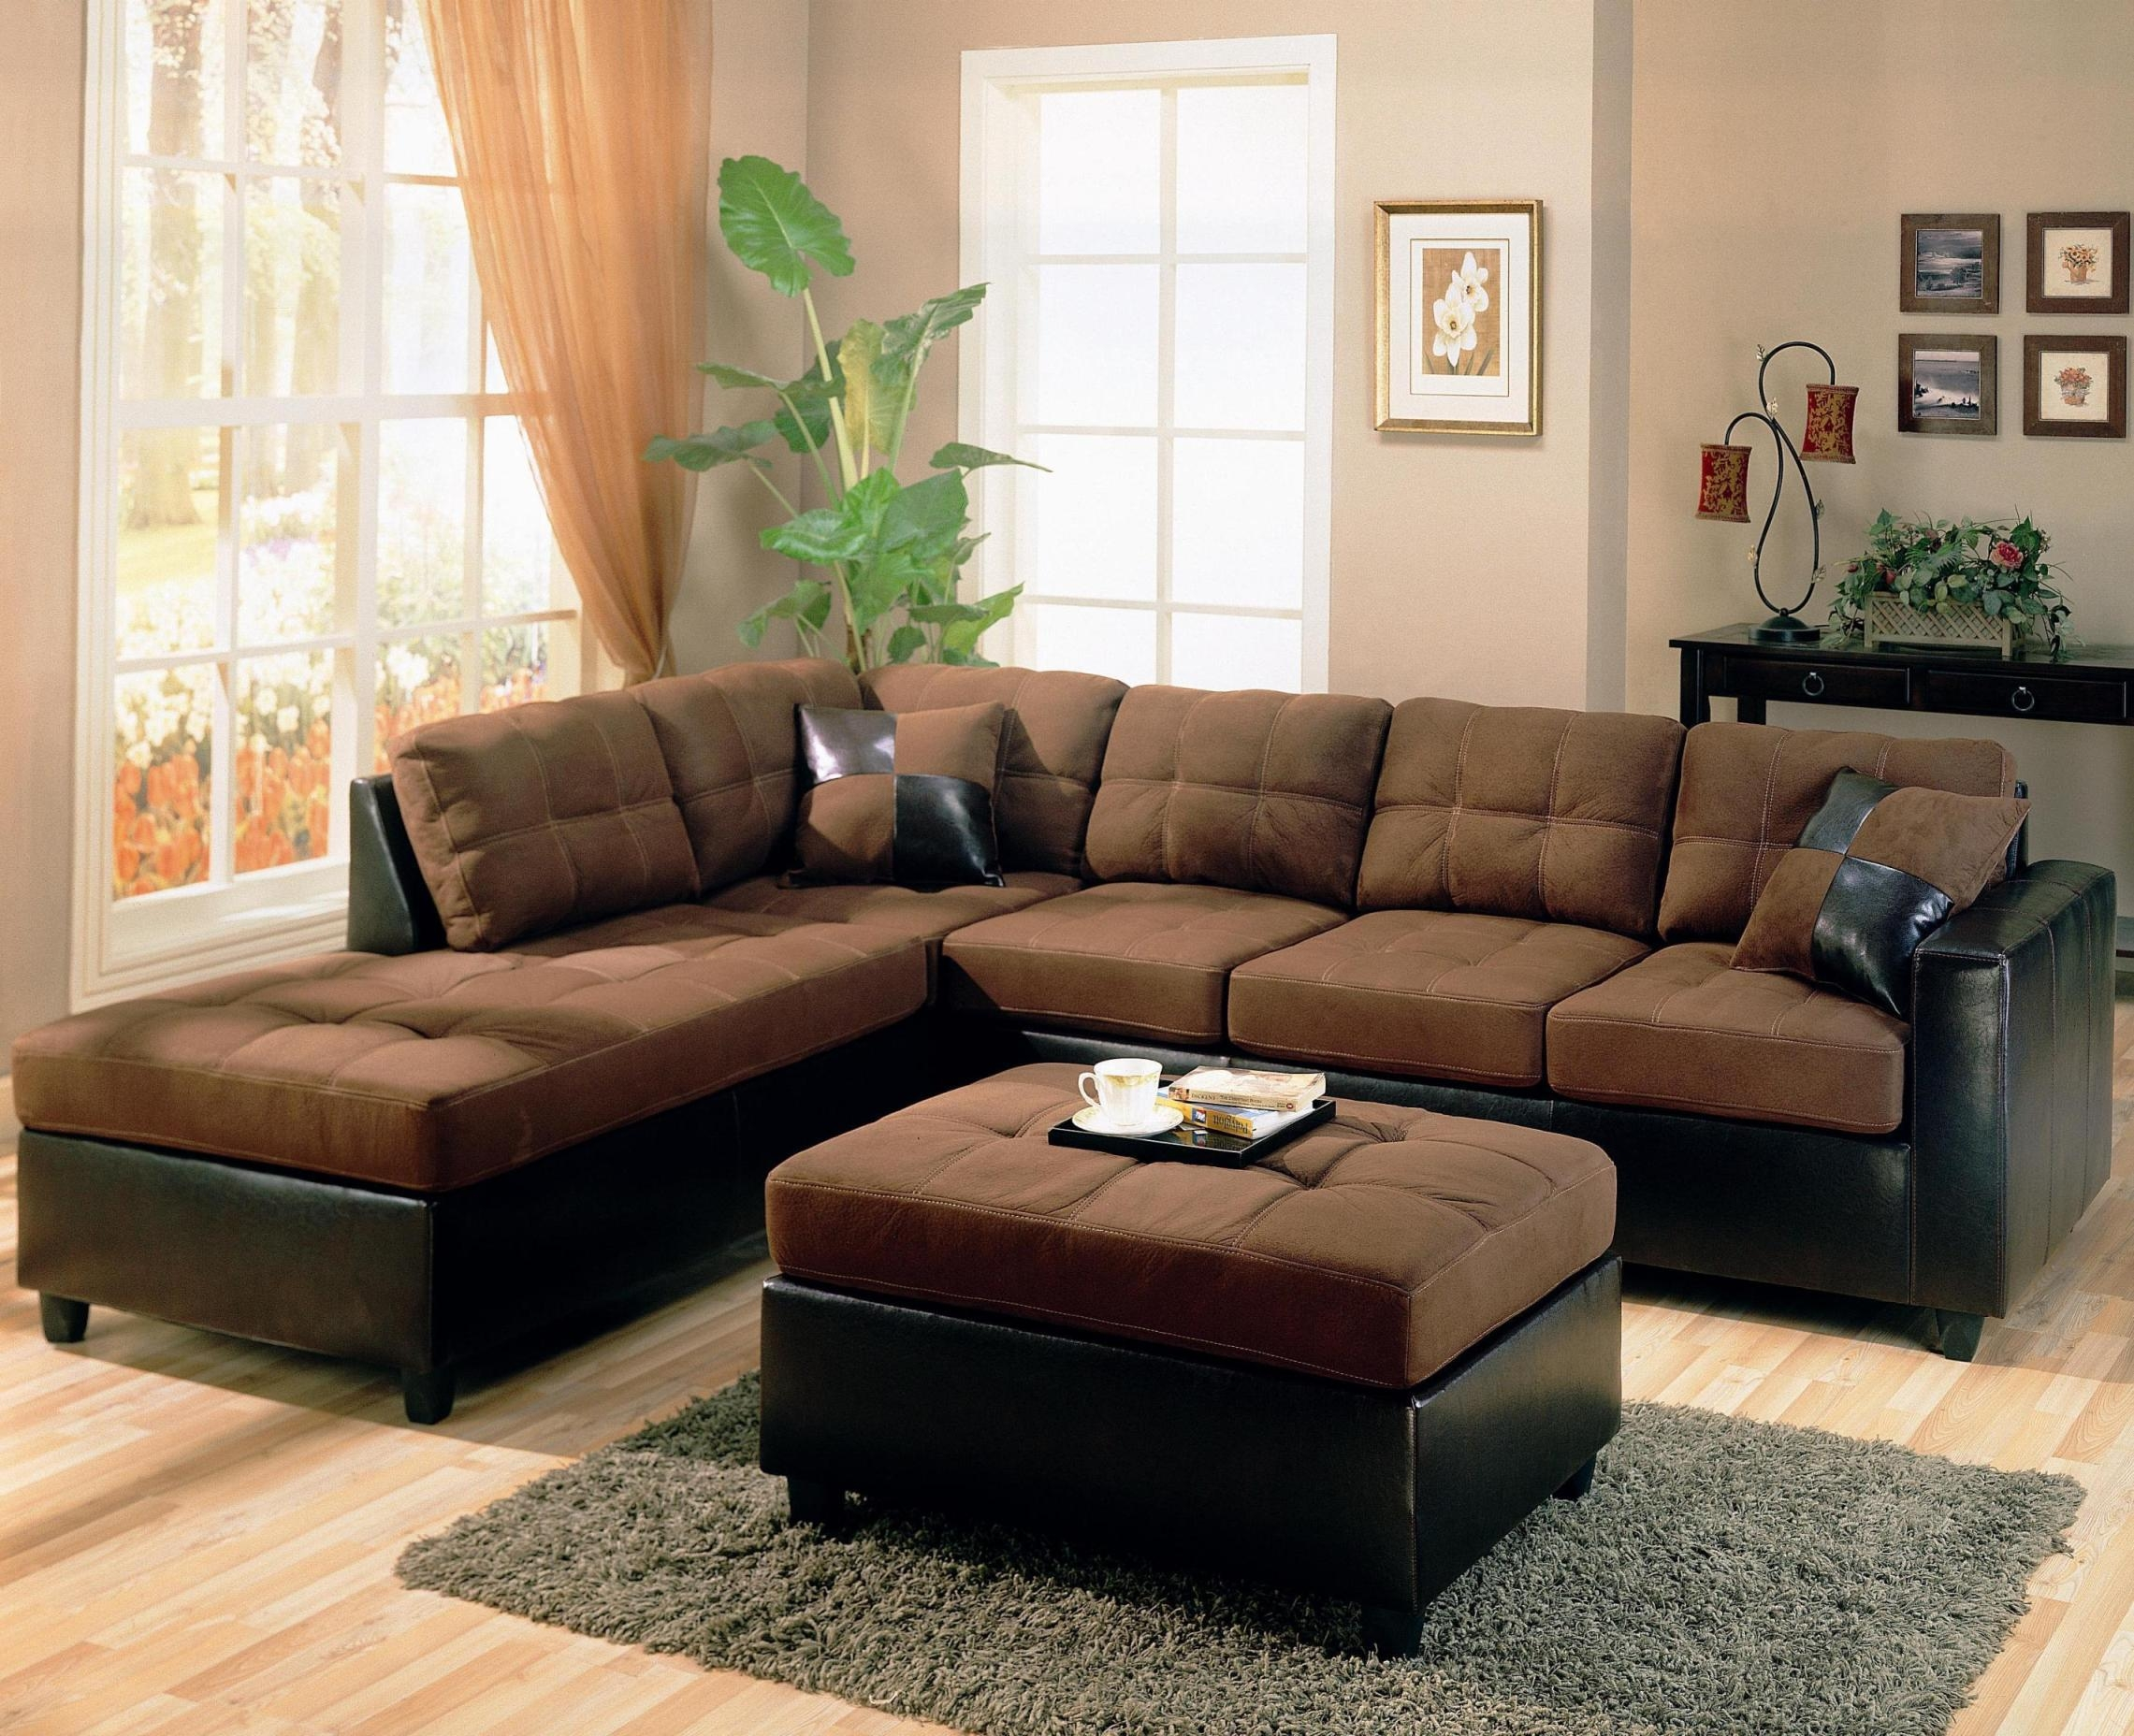 Sofa Trend 61 With Sofa Trend | Jinanhongyu Pertaining To Sofa Trend (View 4 of 20)